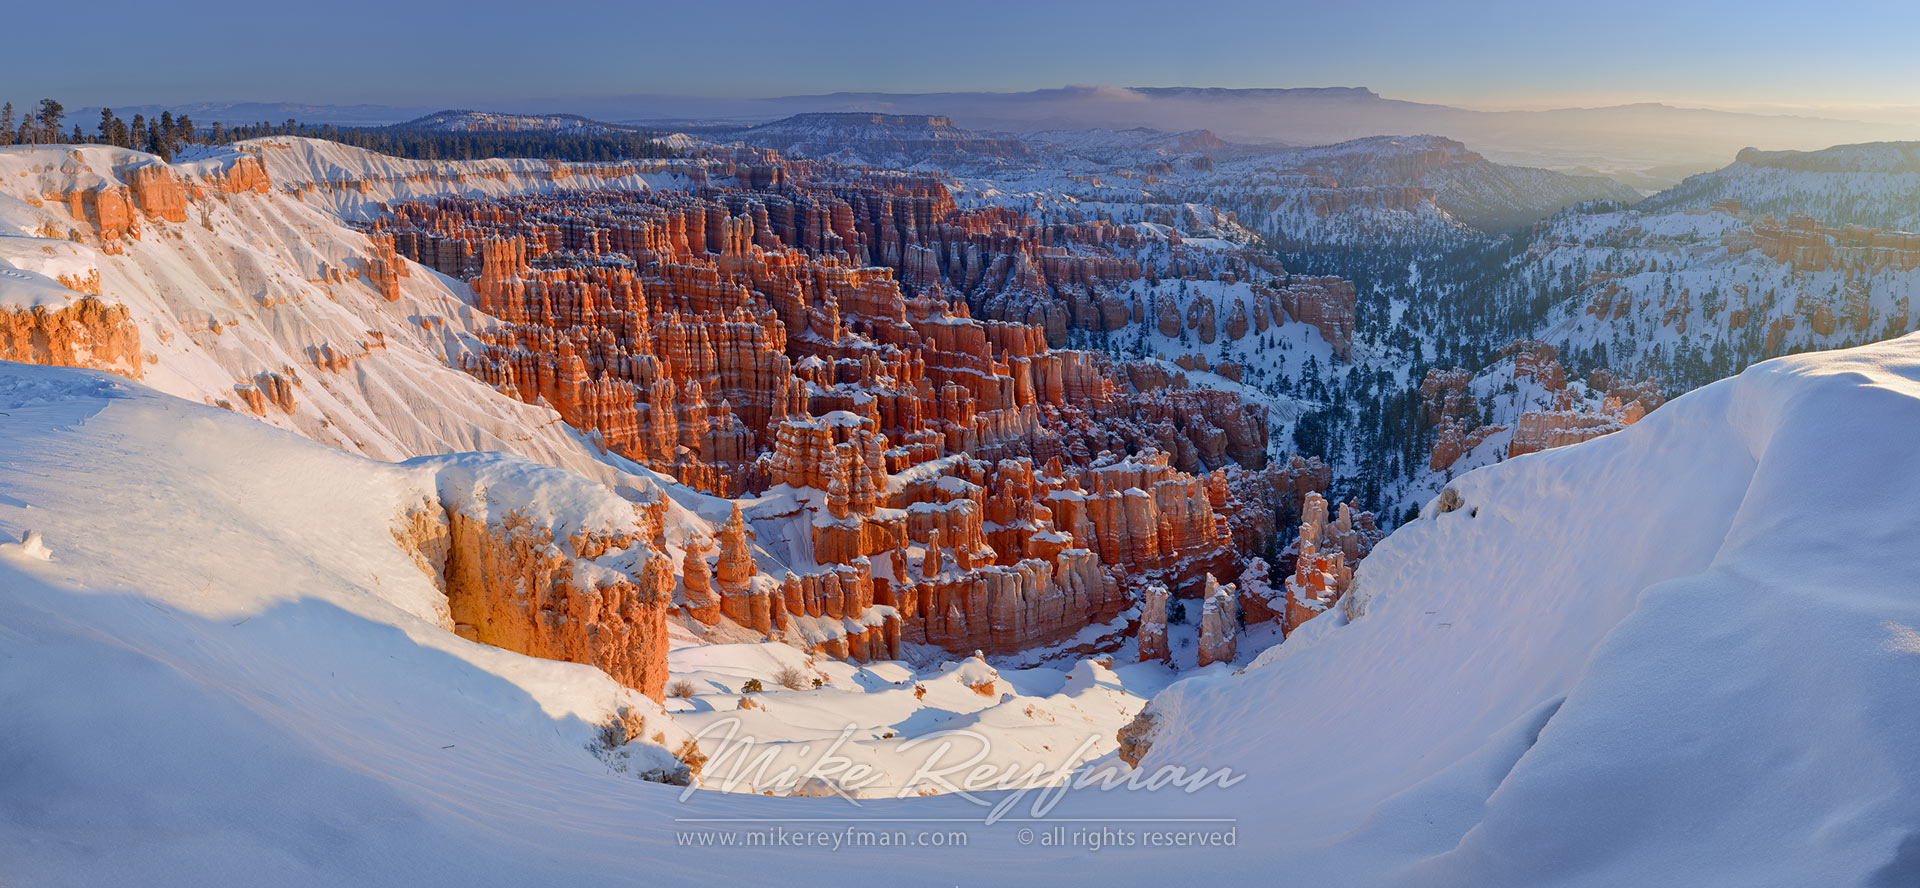 Panoramic View from Inspiration Point at sunrise. Bryce Canyon National Park, Utah, USA. - Bryce-Canyon-National-Park-Utah-USA - Mike Reyfman Photography